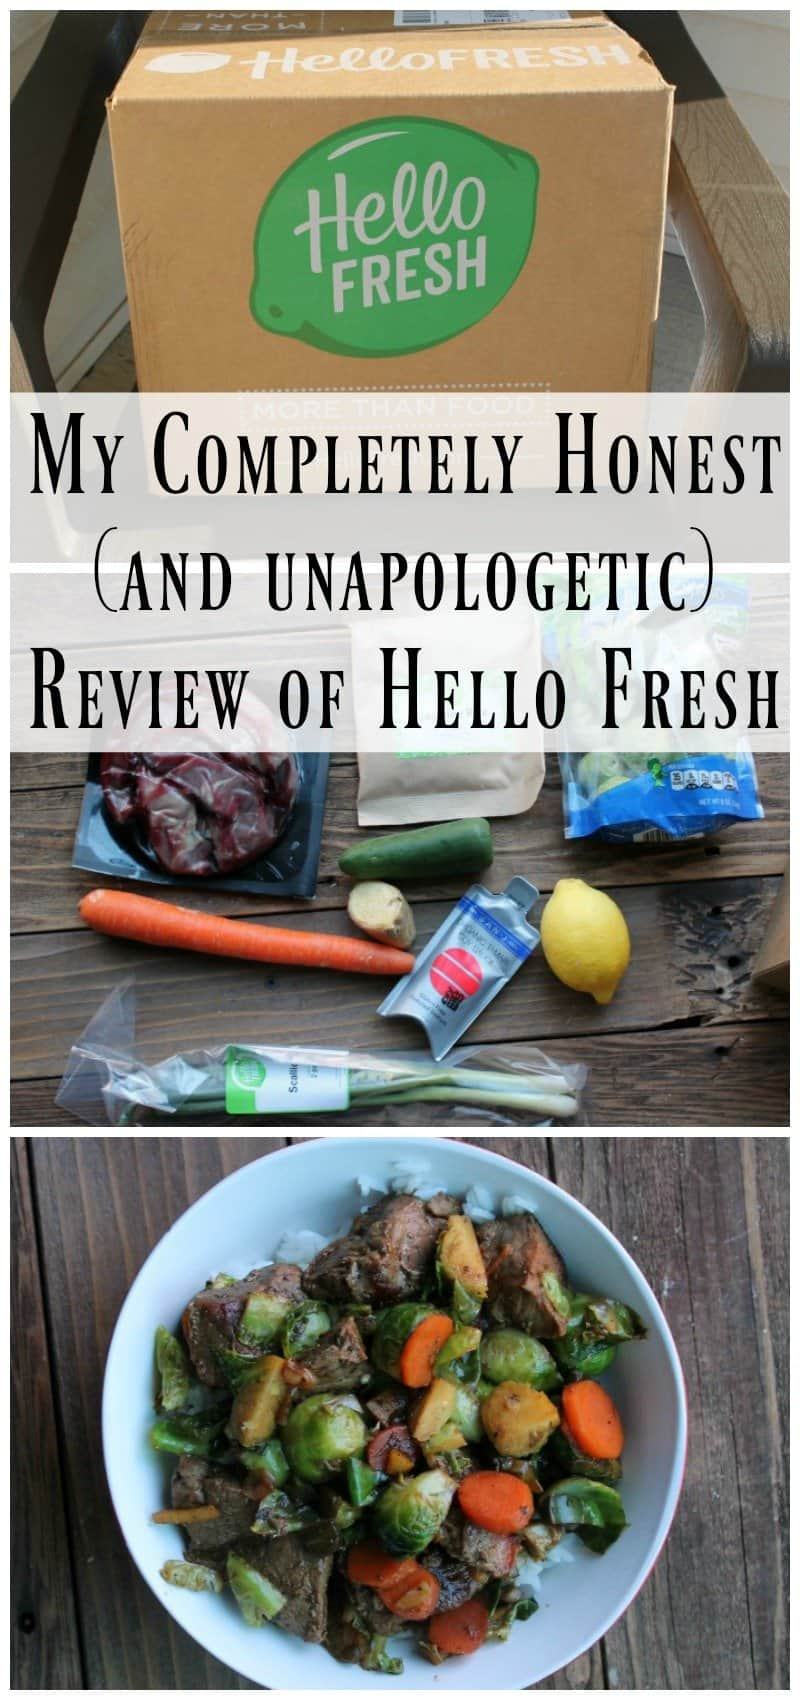 Hellofresh  Meal Kit Delivery Service Review 6 Months Later